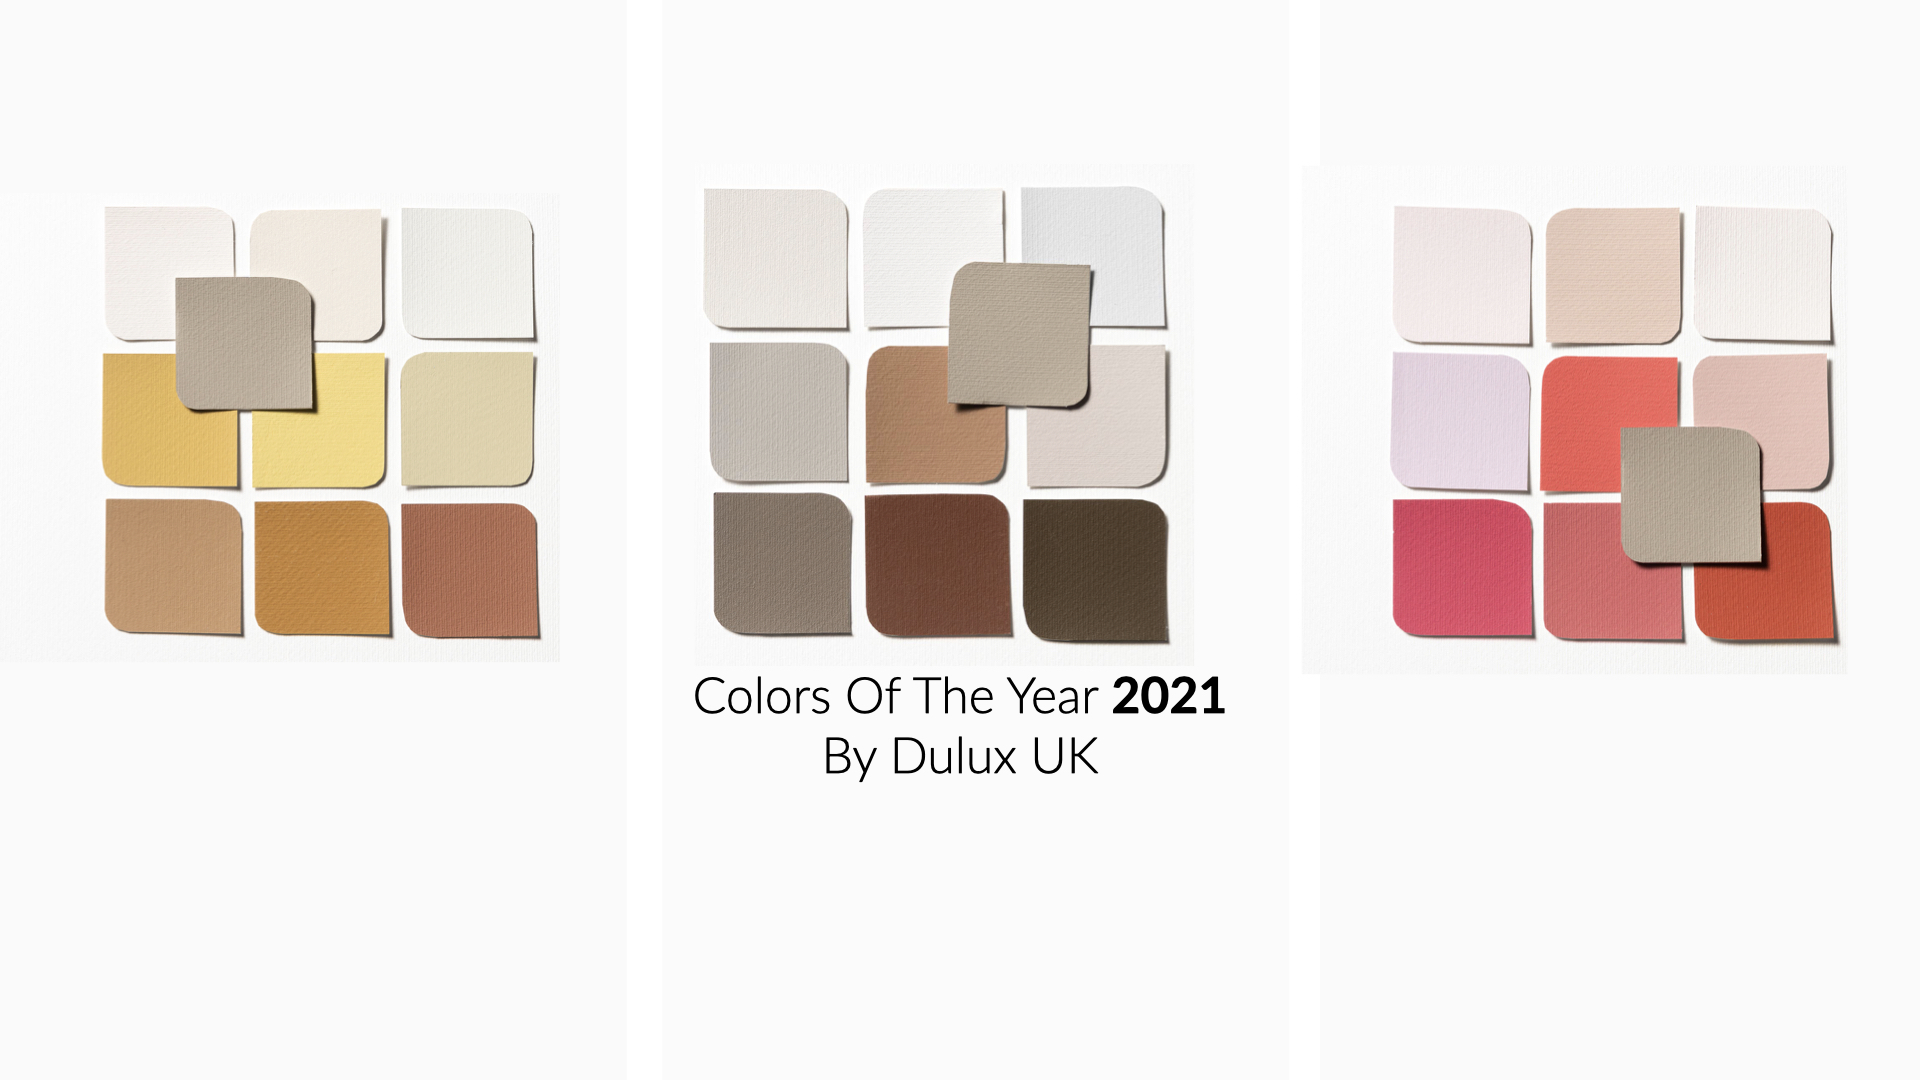 Colors of the Year 2021 Dulux UK-Eclectic Trends